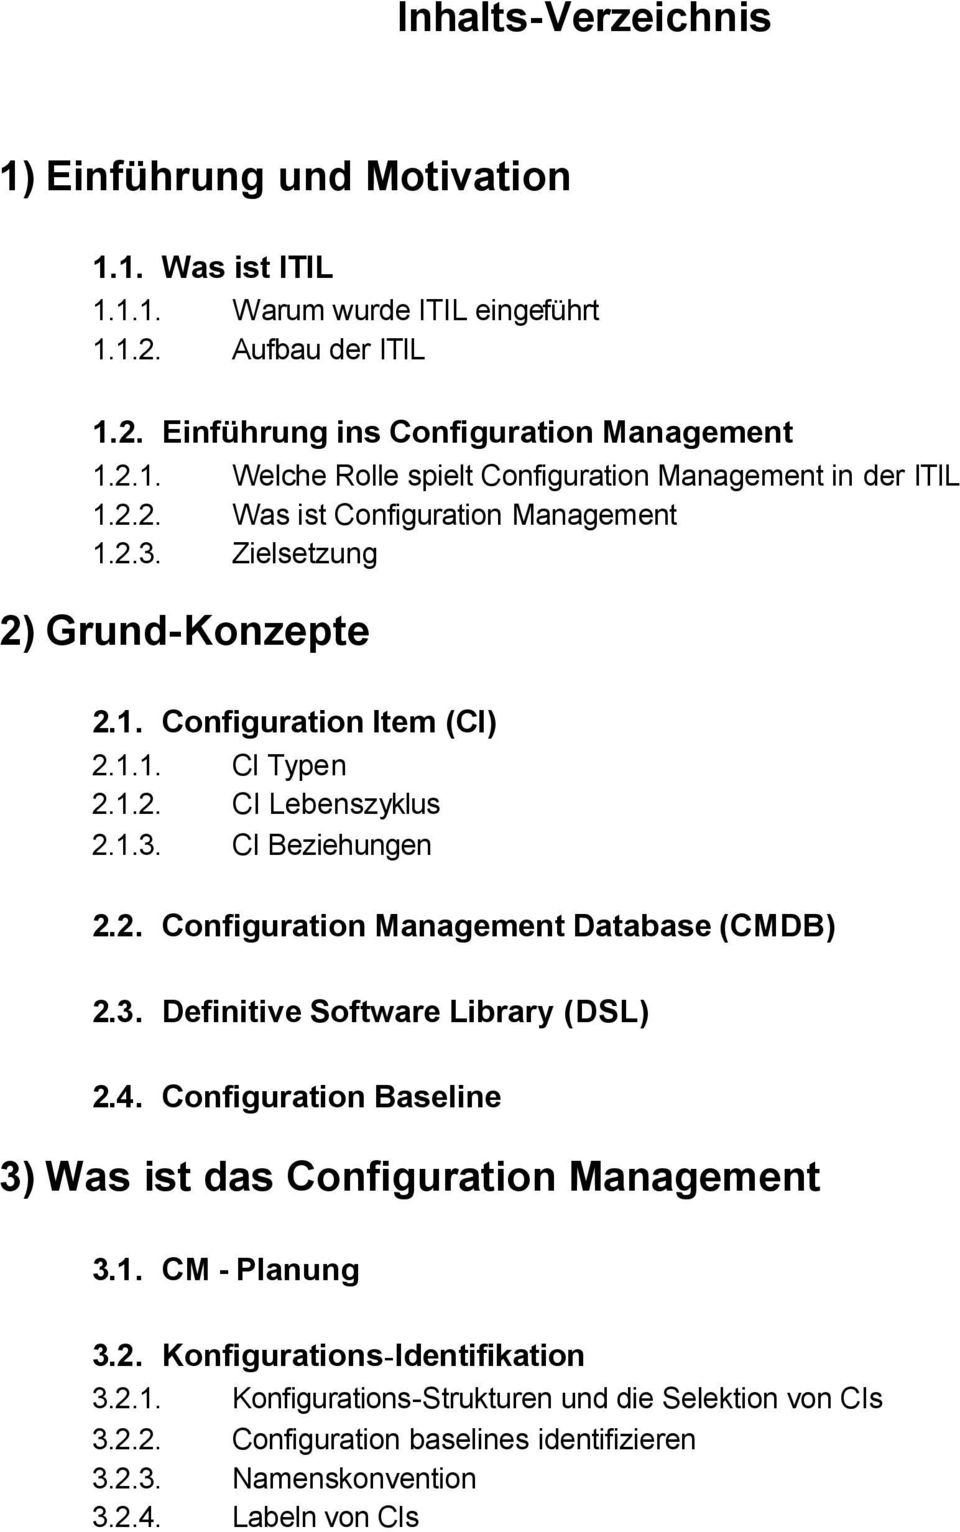 3. Definitive Software Library (DSL) 2.4. Configuration Baseline 3) Was ist das Configuration Management 3.1. CM - Planung 3.2. Konfigurations-Identifikation 3.2.1. Konfigurations-Strukturen und die Selektion von CIs 3.